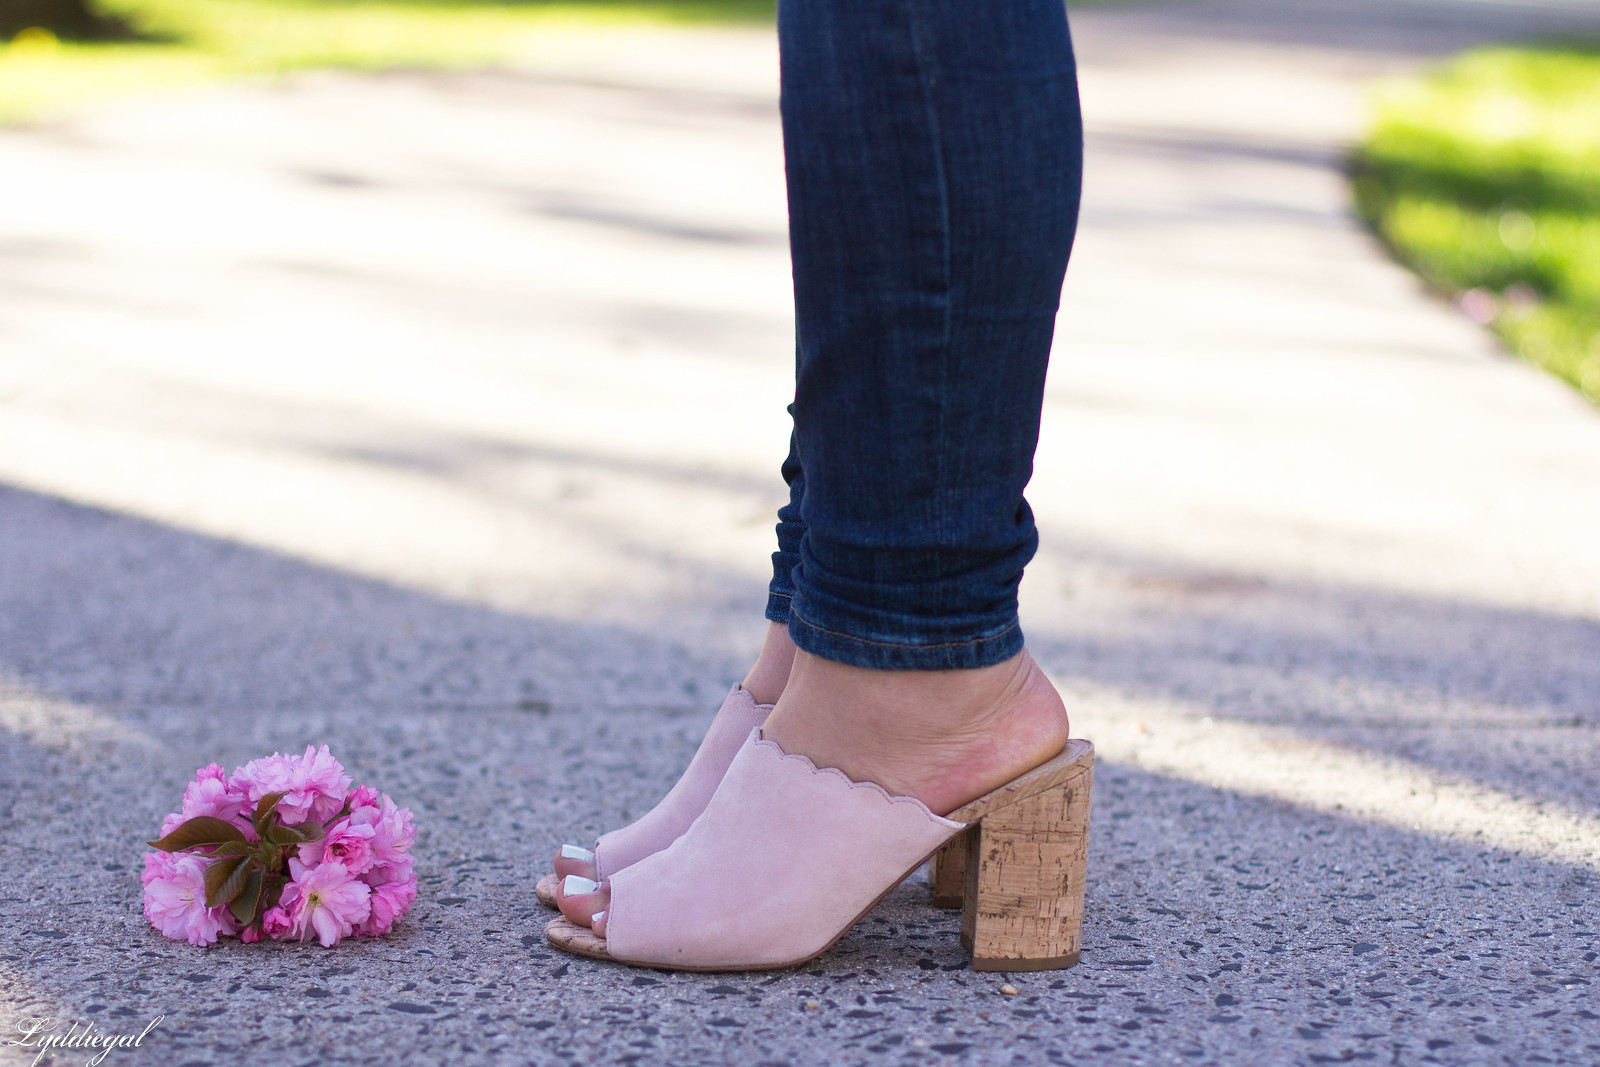 scalloped blazer, camisole, mules, spring outfit-8.jpg